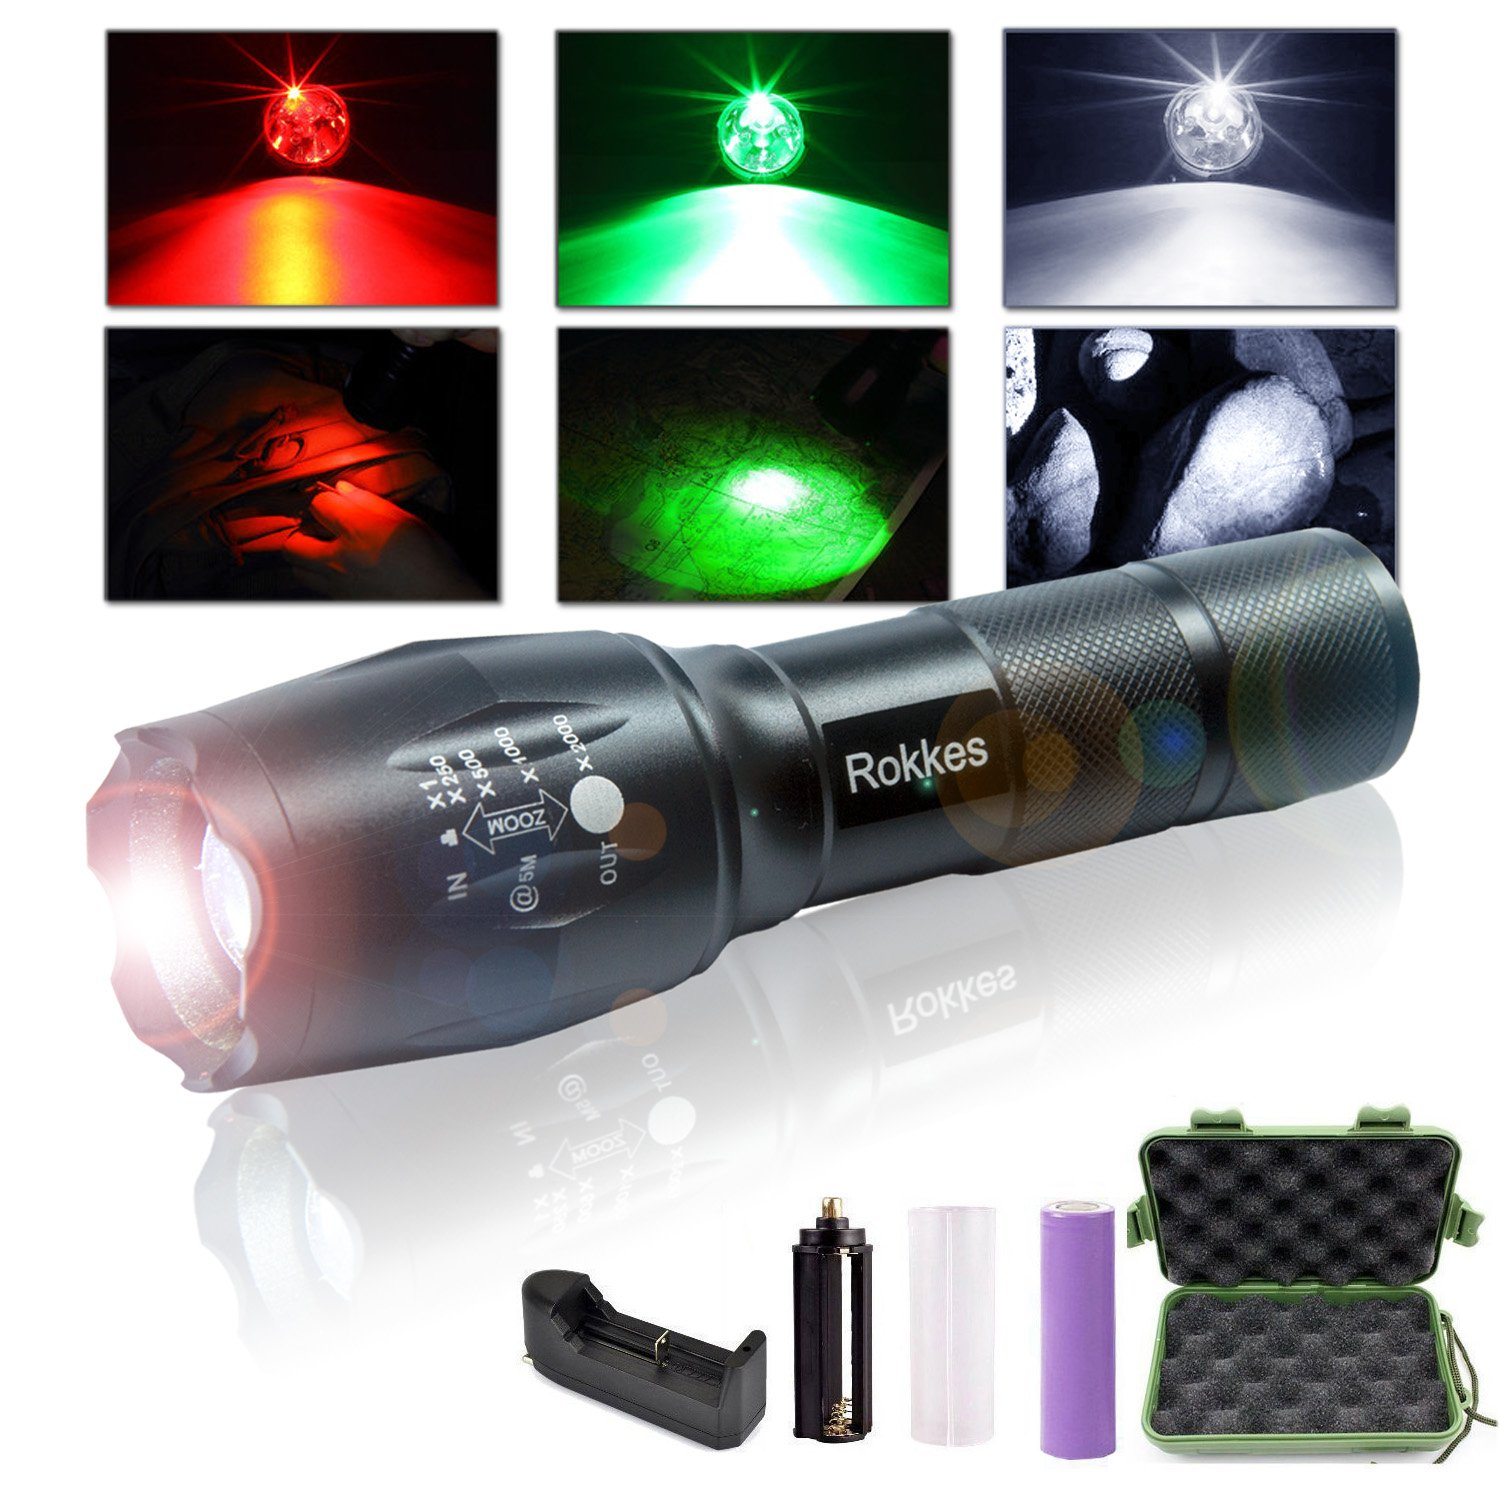 ROKKES LED Rechargeable Handheld Flashlight - Zoomable, Professional Ultra Bright 1500 Lumens from 3 CREE LEDs Torch, RGB 3 Colors Light, Tactical Portable Flashlights with 18650 Battery by ROKKES